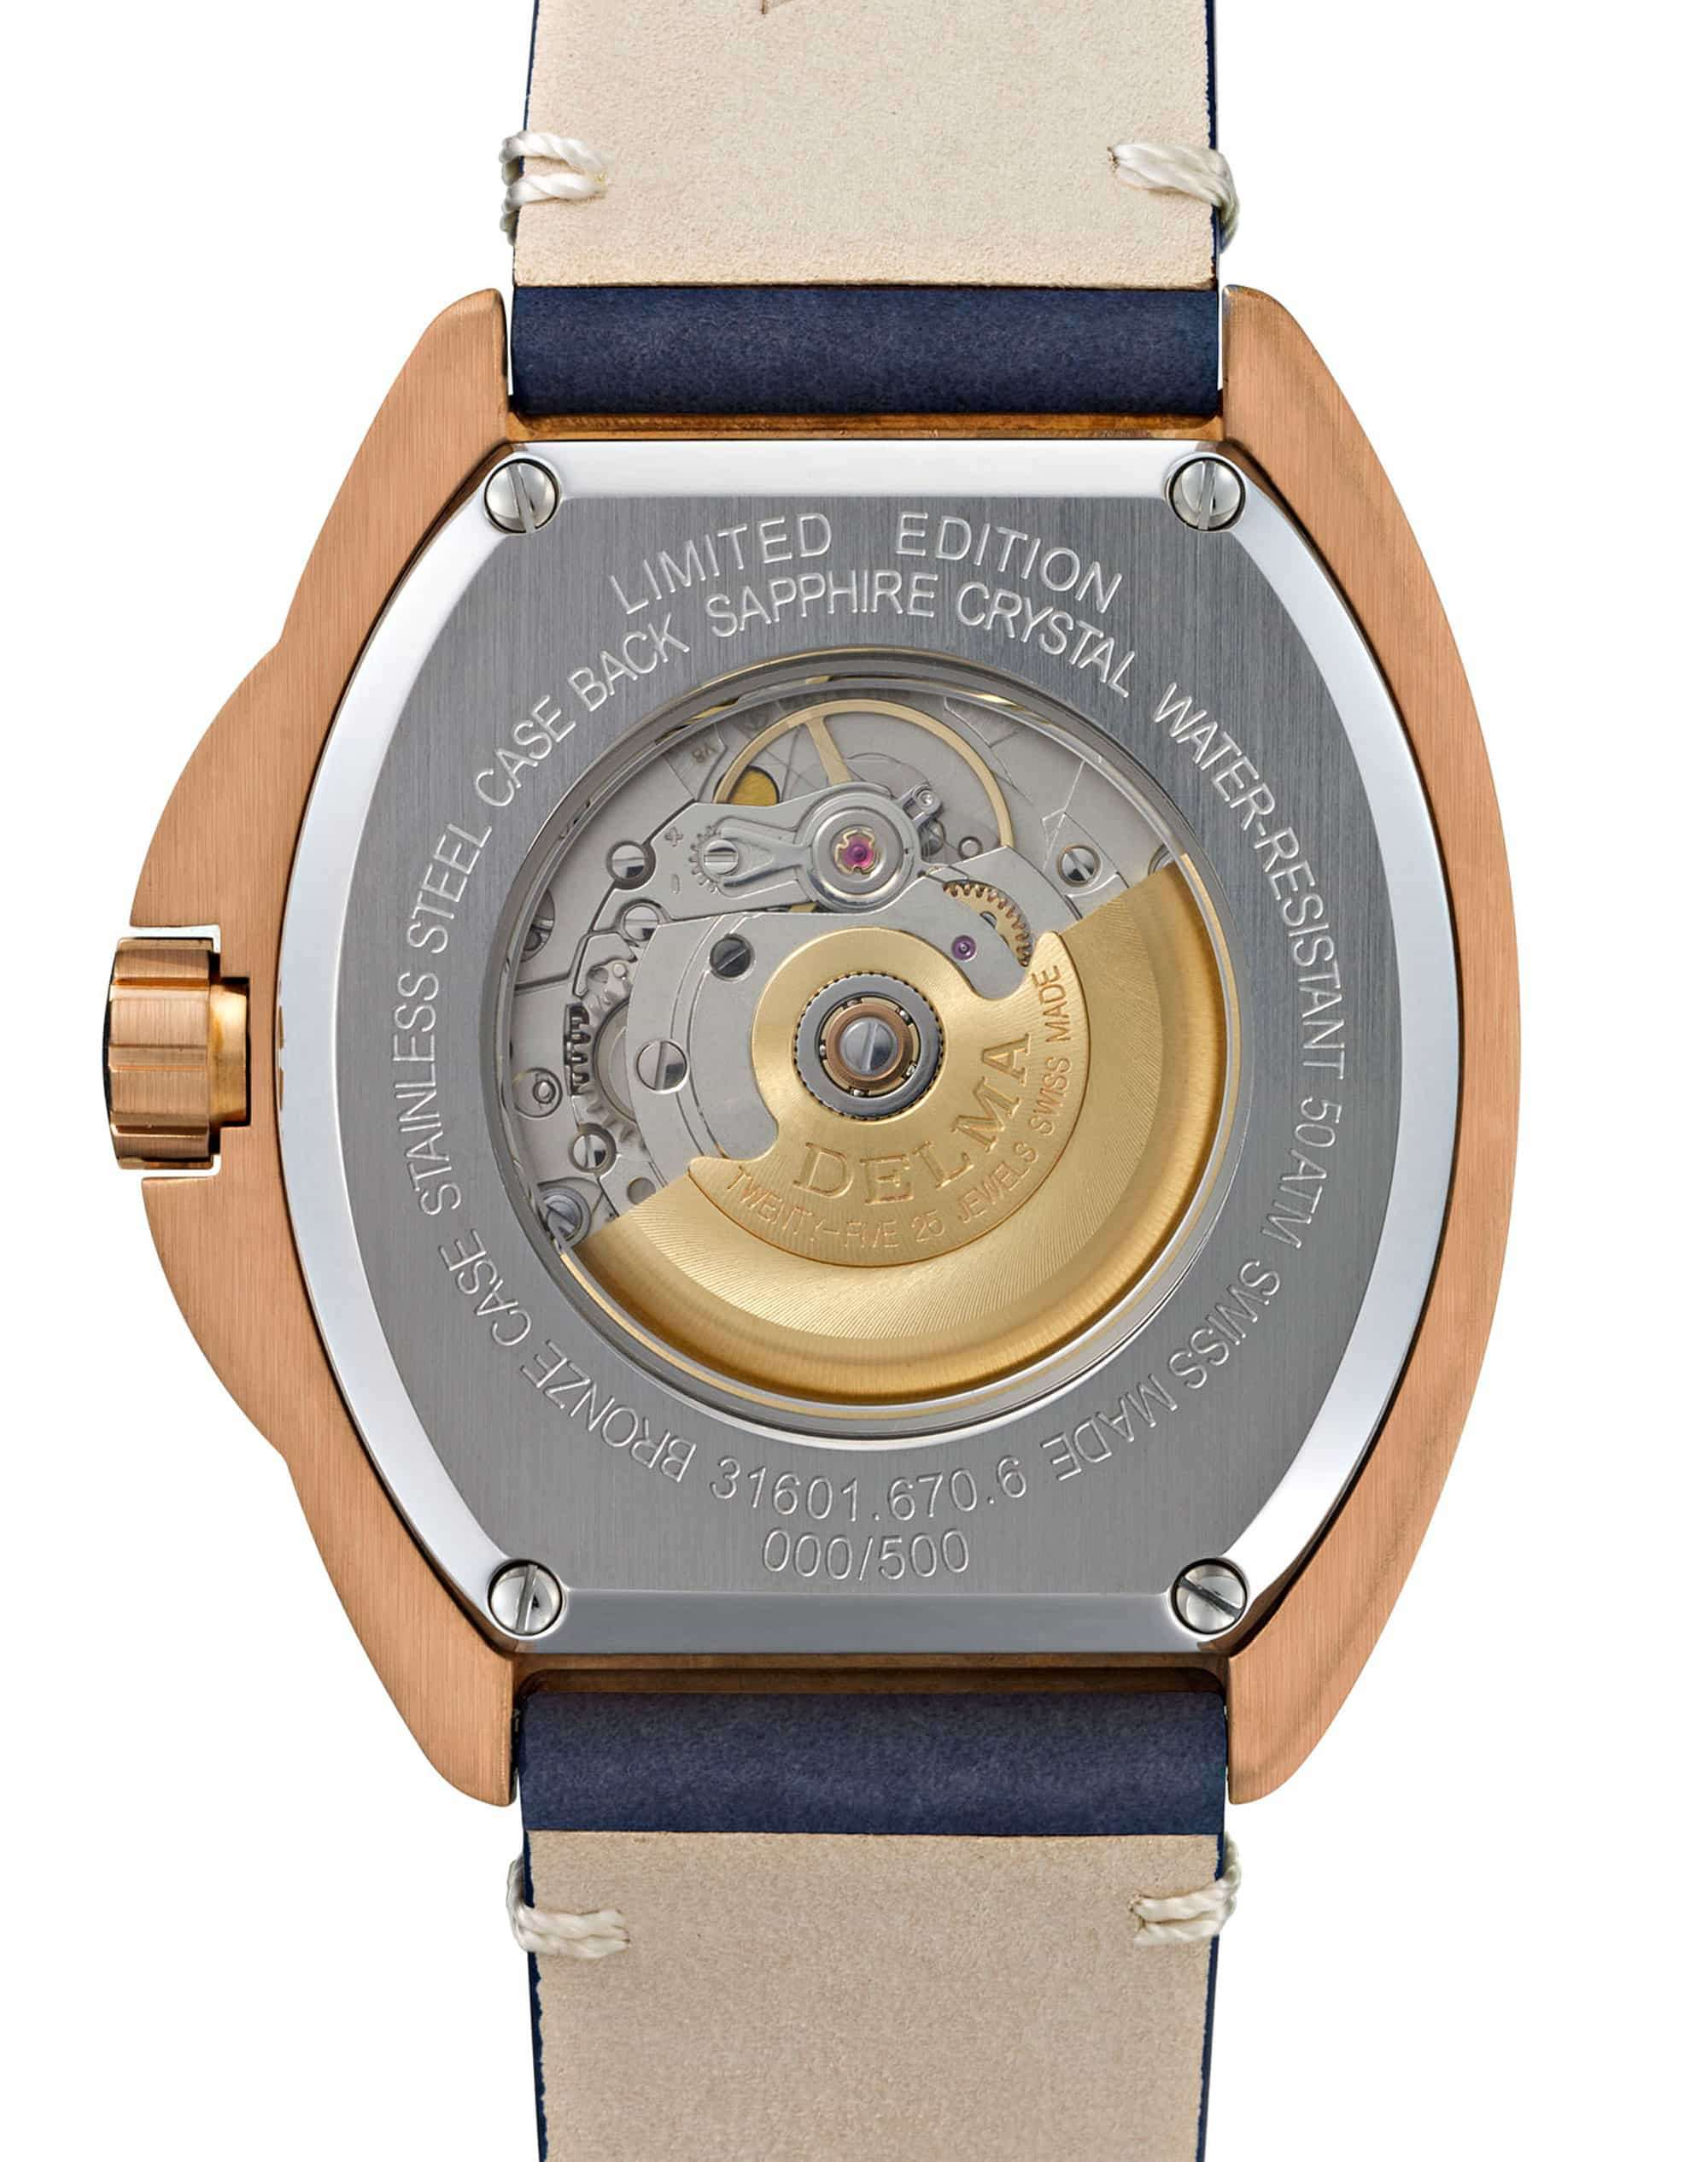 Delma Shell Star Bronze Blue Dial 31601.670.6.048 – Swiss Time